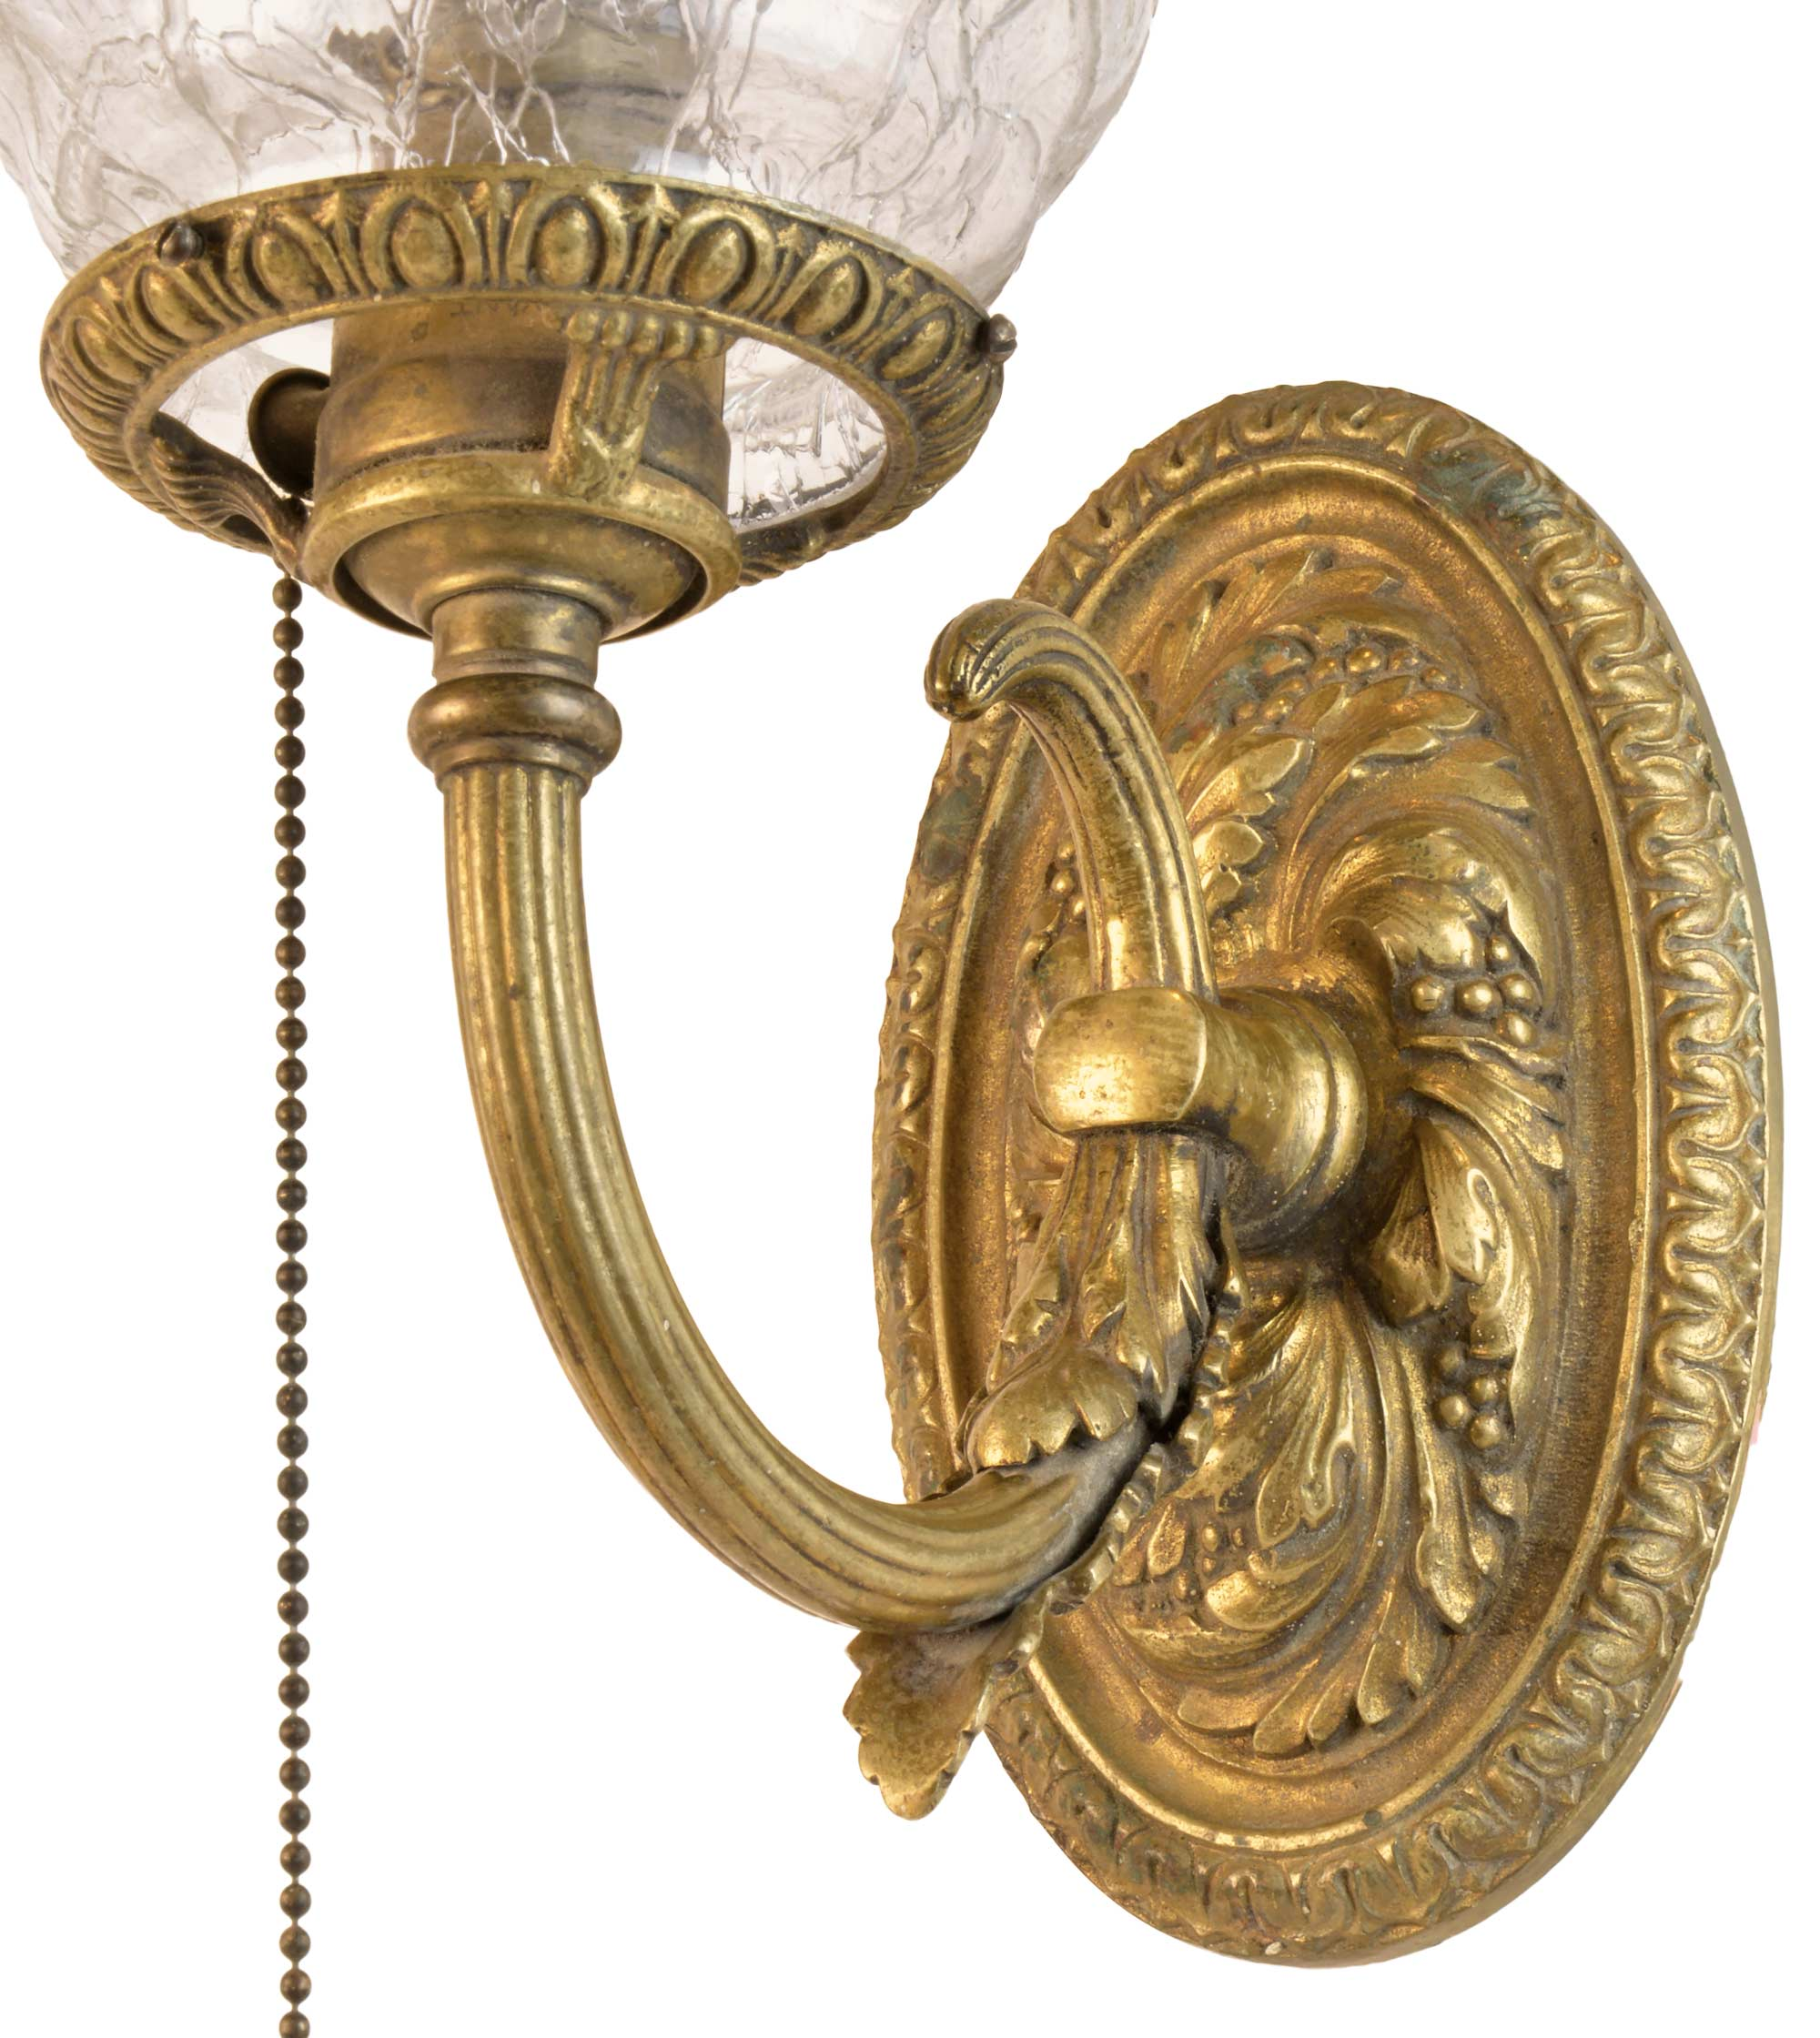 46643-caldwell-single-arm-sconce-detail.jpg